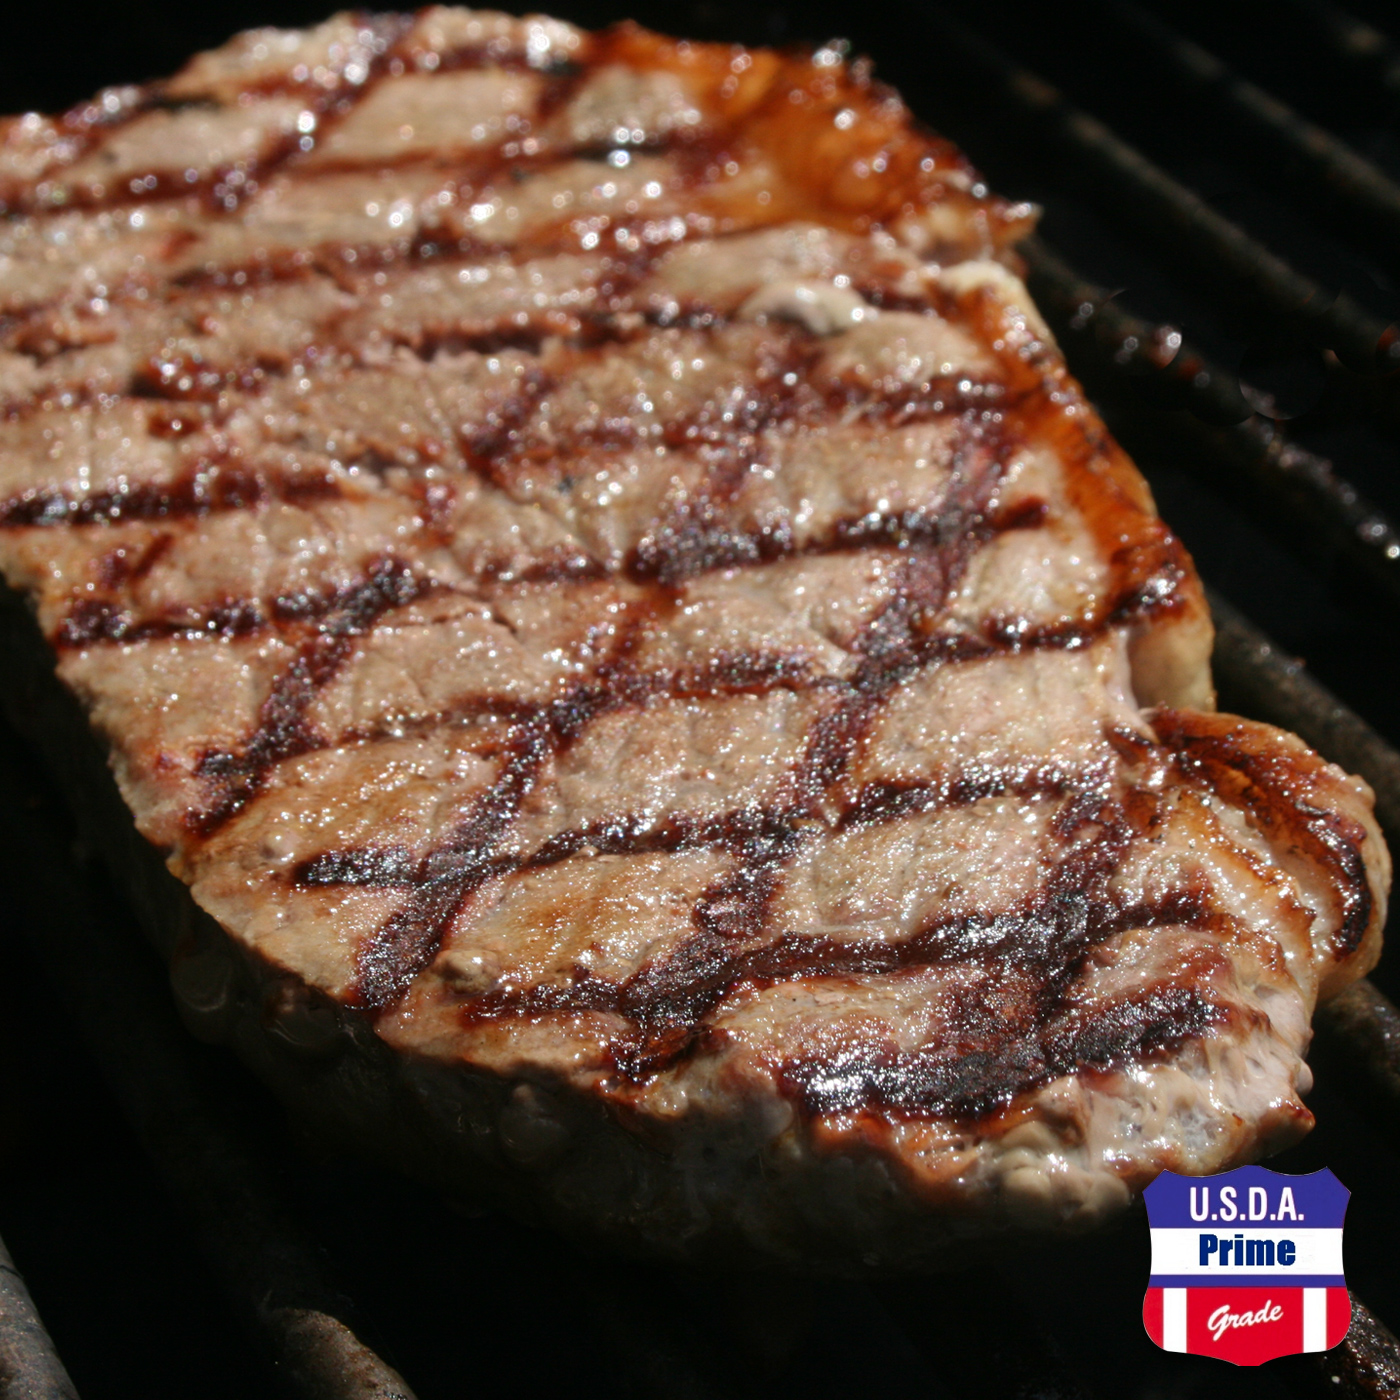 USDA Prime Delmonico steak on the grill